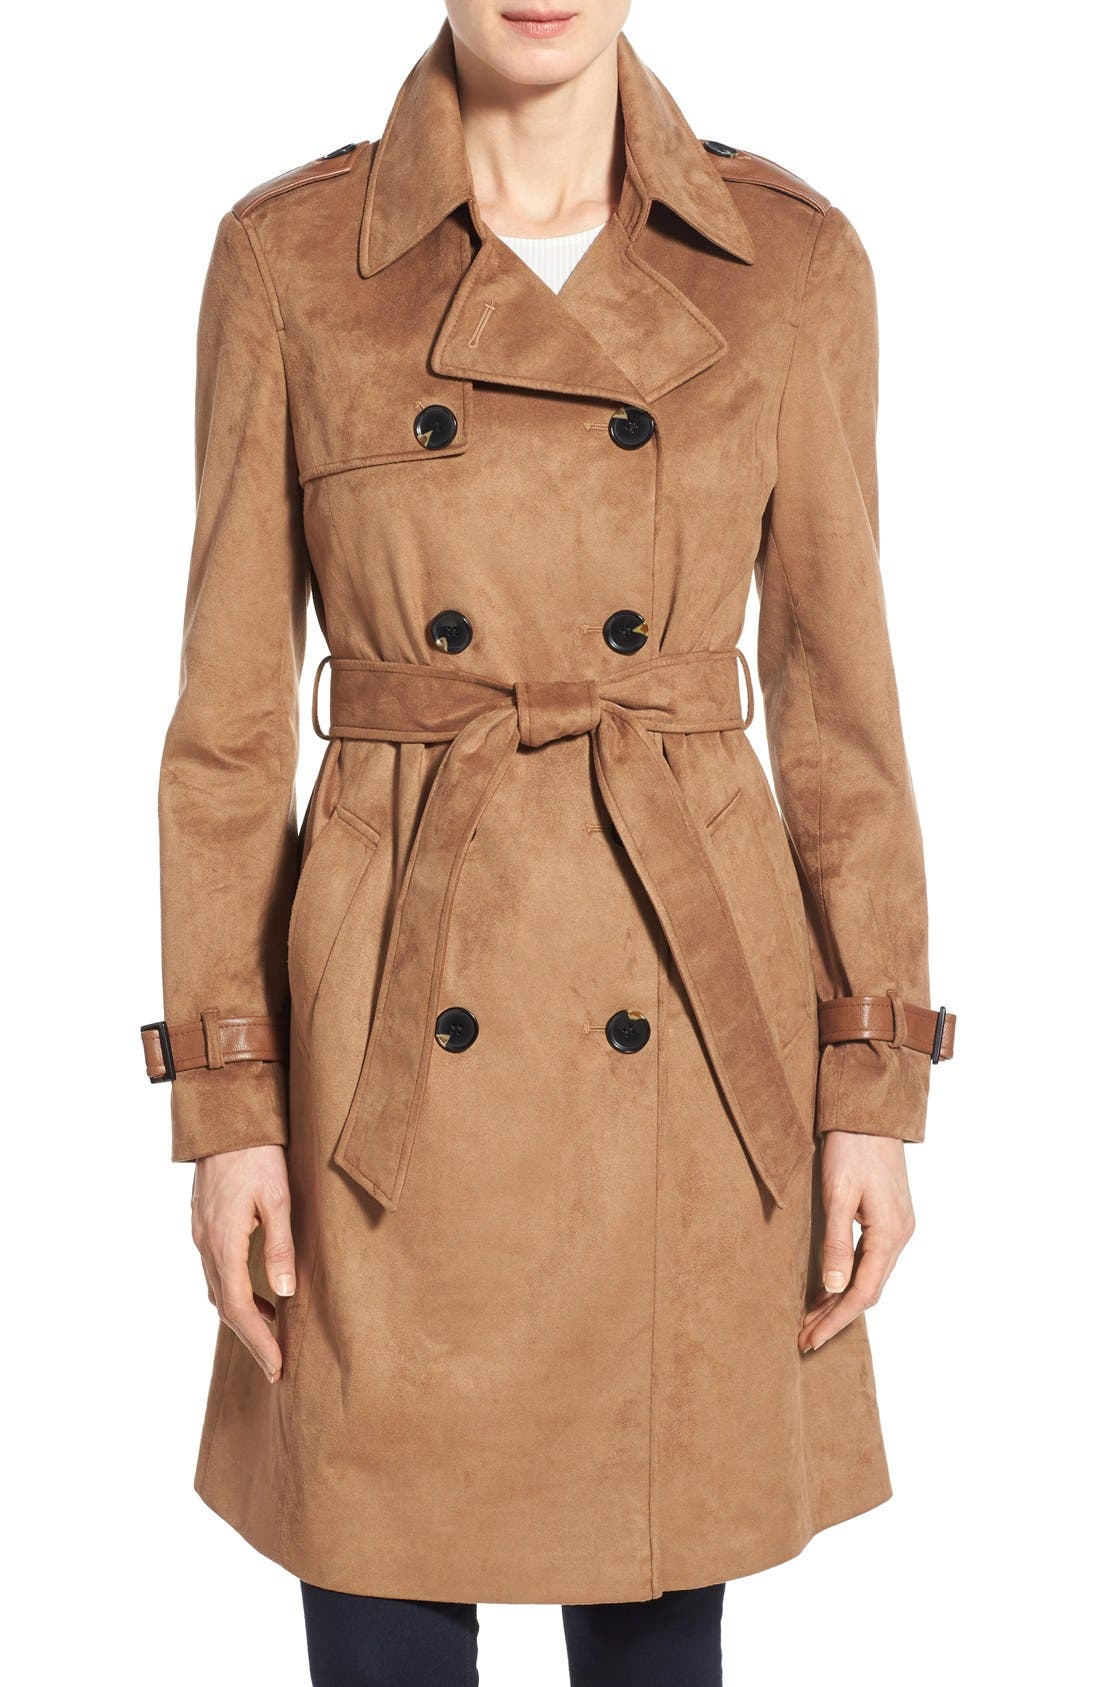 Alternate Image 1 Selected - Via Spiga Double Breasted Faux Suede Trench Coat